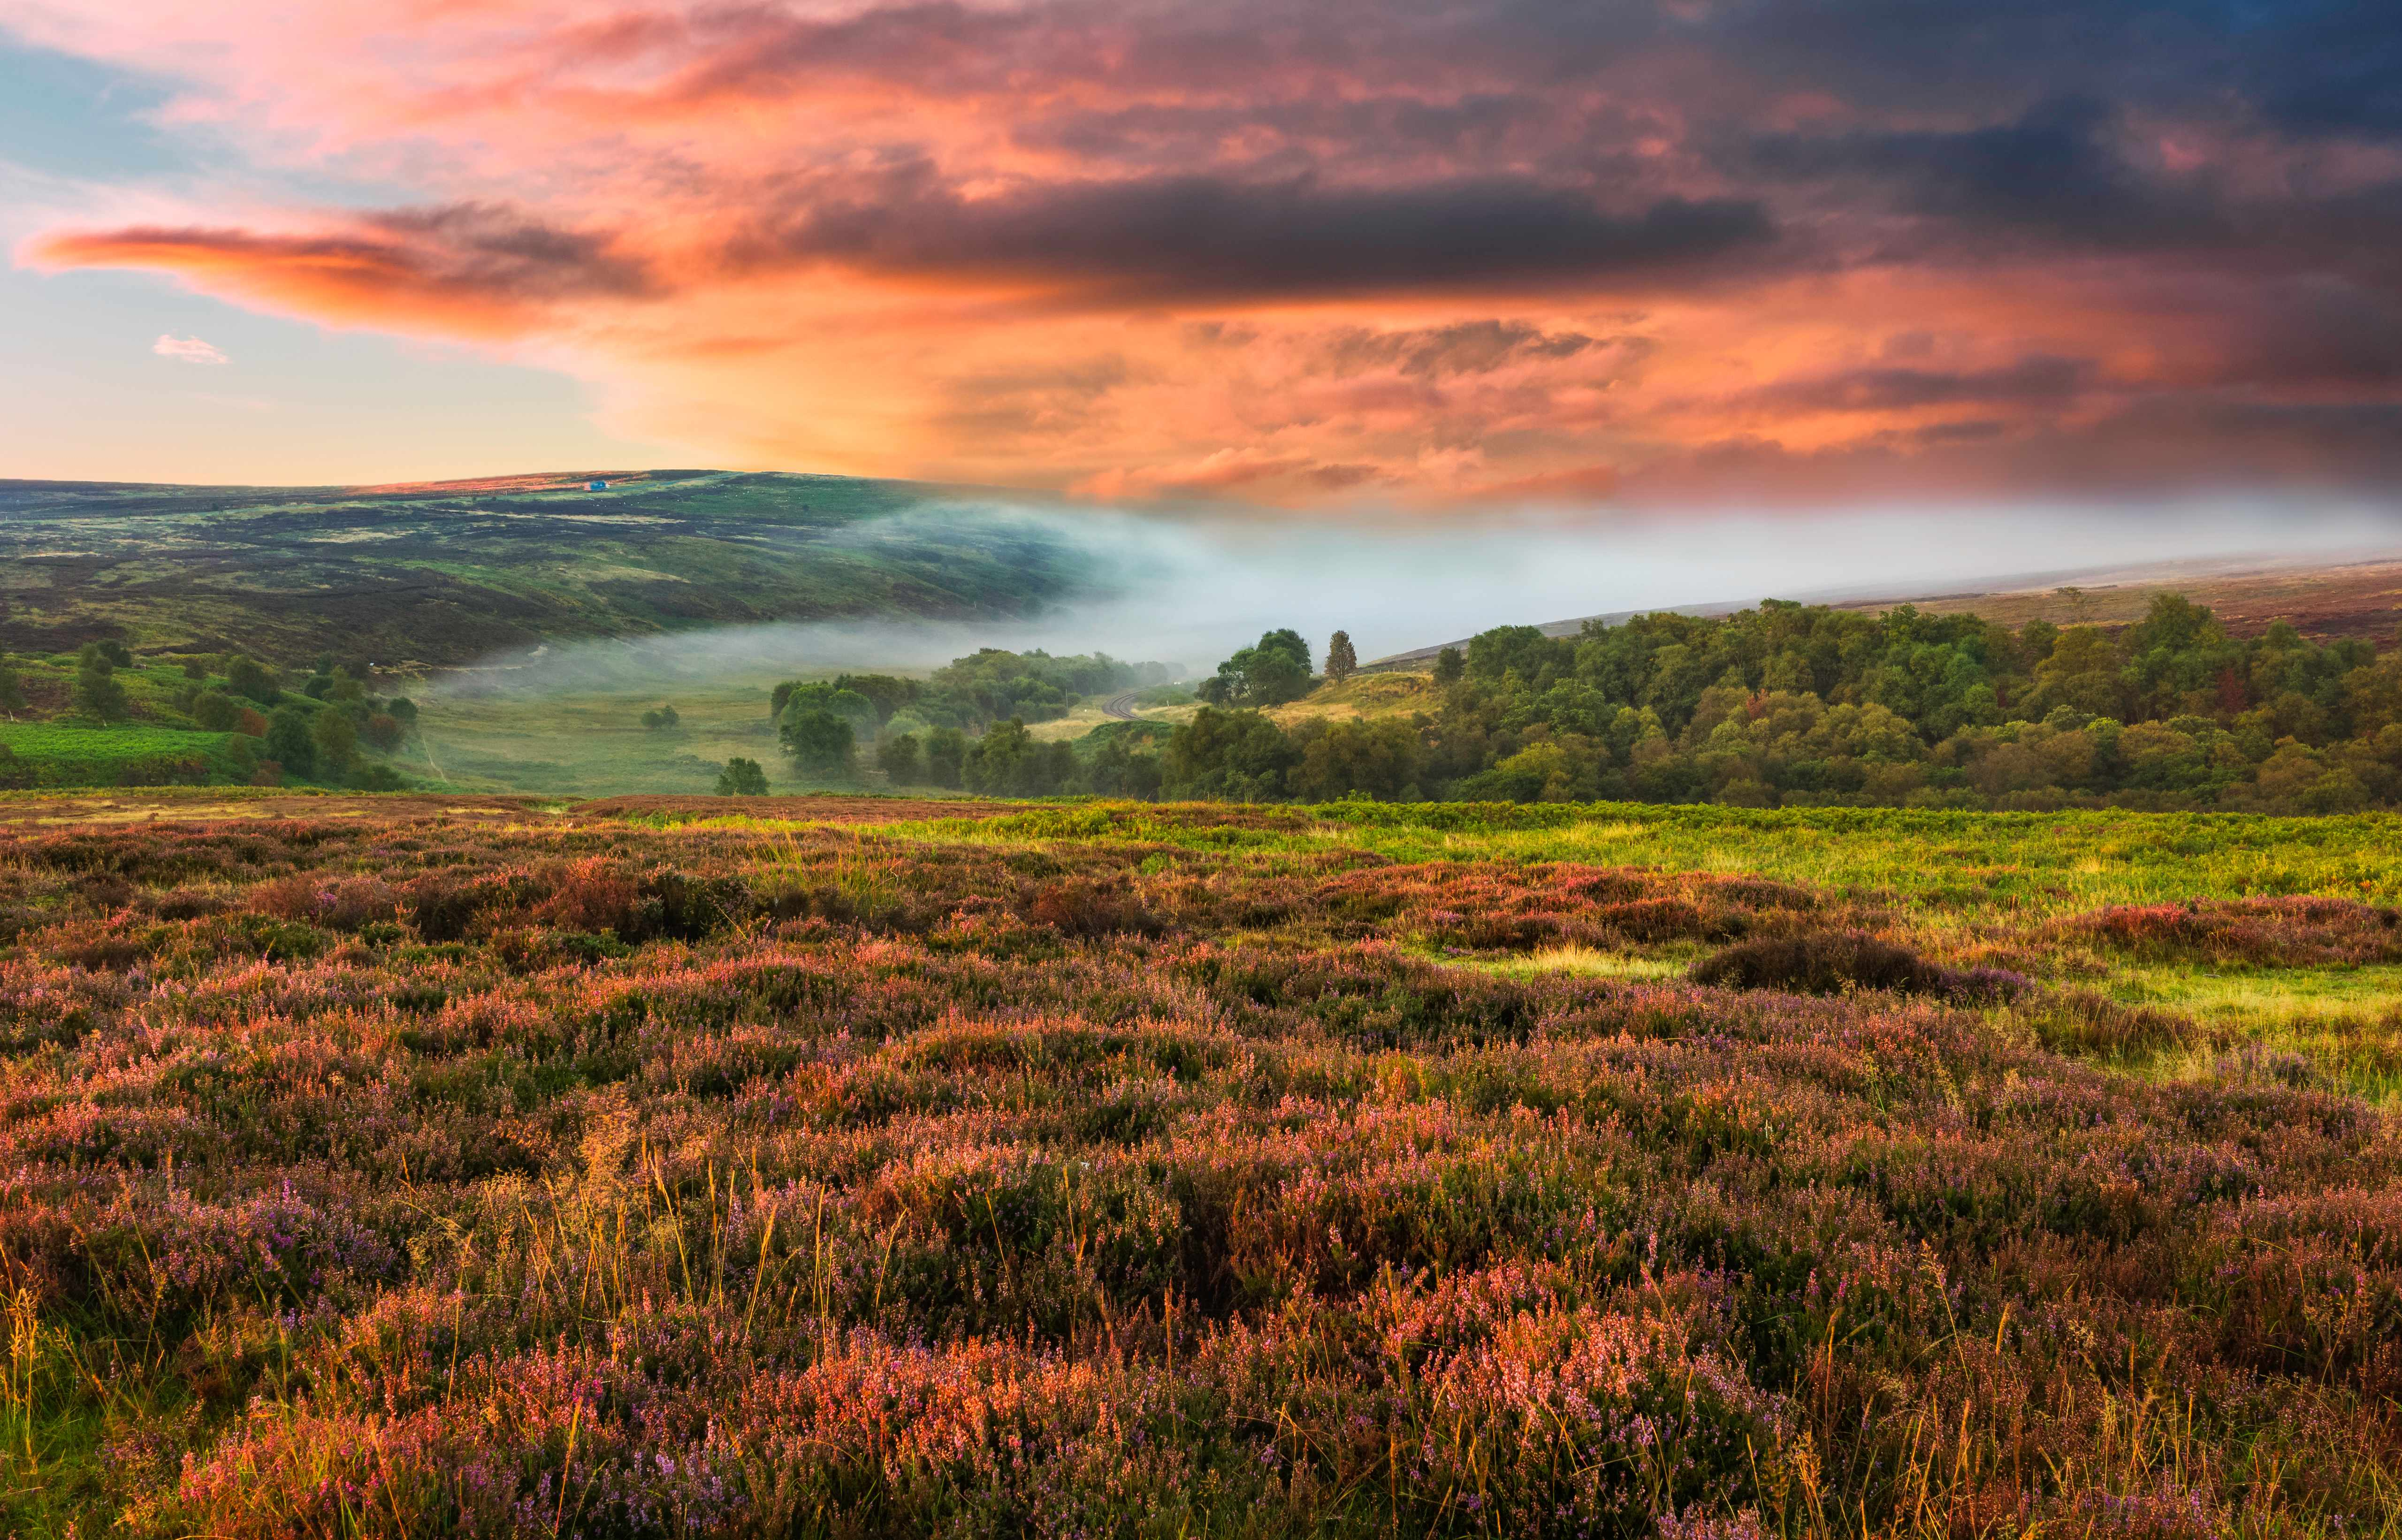 Dawn mist over the North York Moors national park shot in autumn (fall) when the heather is in full bloom near the village of Goathland, north Yorkshire, UK.